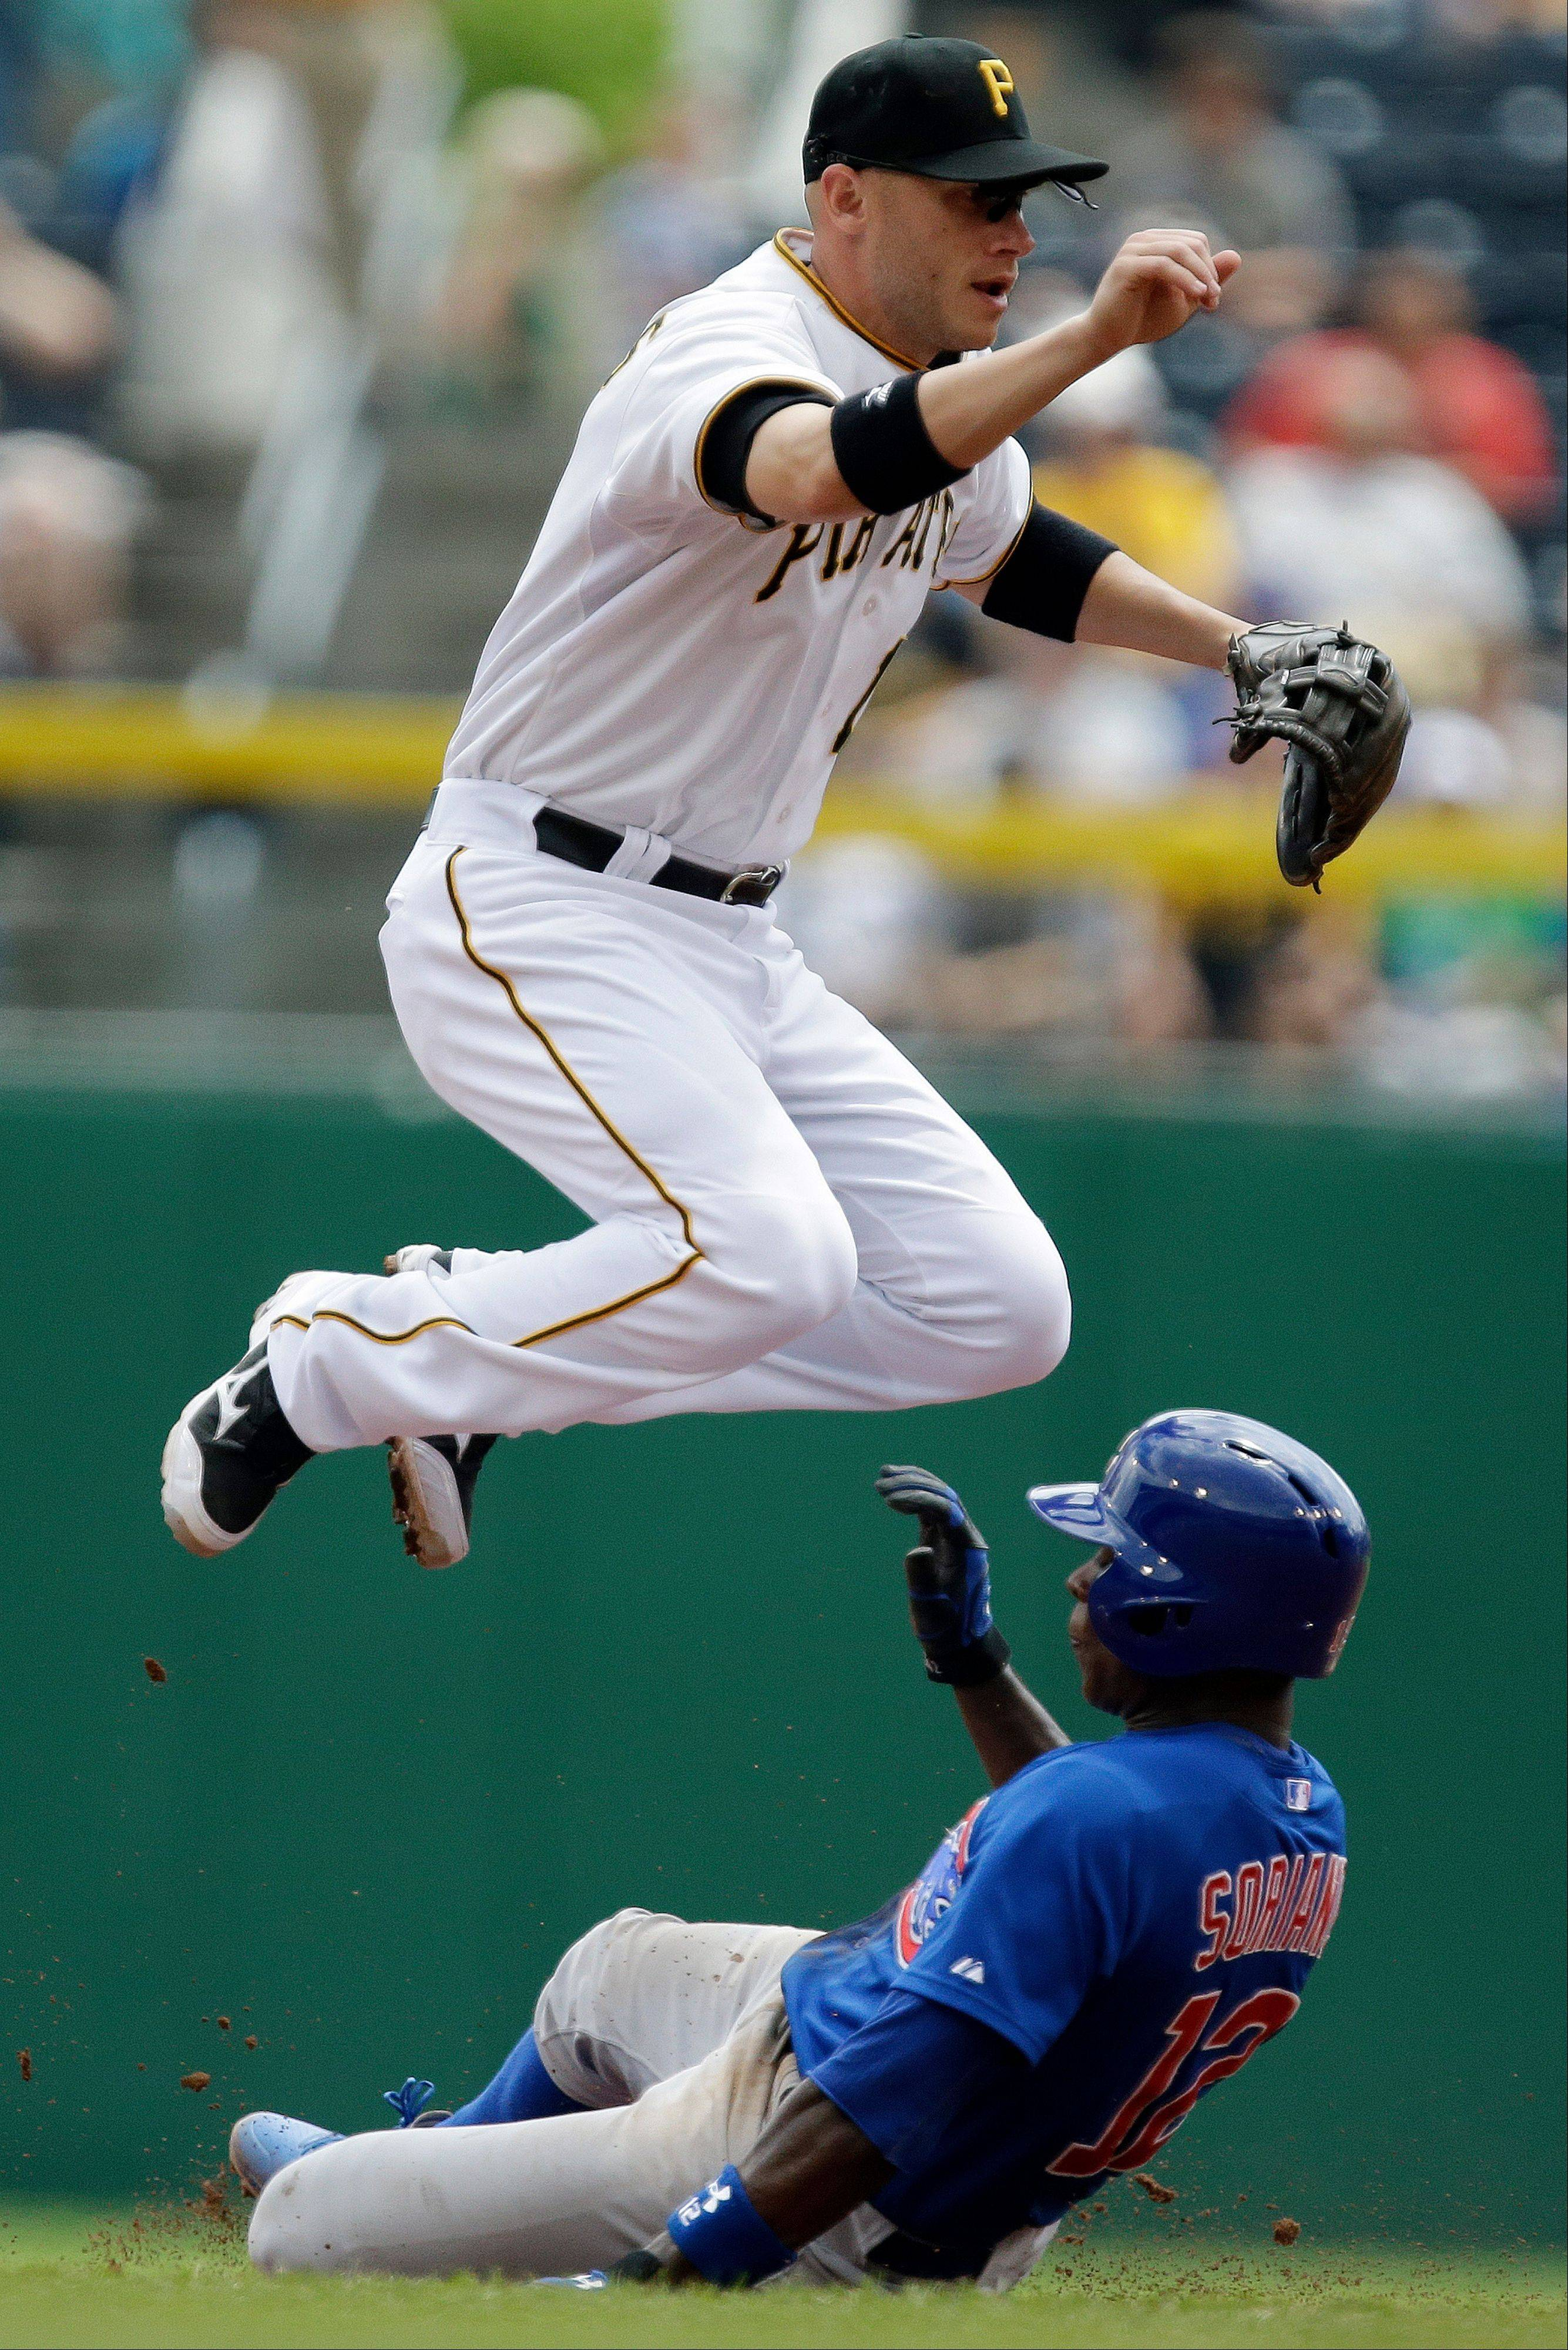 Pittsburgh Pirates shortstop Clint Barmes (12) leaps to avoid Chicago Cubs' Alfonso Soriano (12) at second base while turning a double play on the Cubs' Nate Schlerholtz at first base during the second inning of a baseball game in Pittsburgh, Thursday, May 23, 2013.